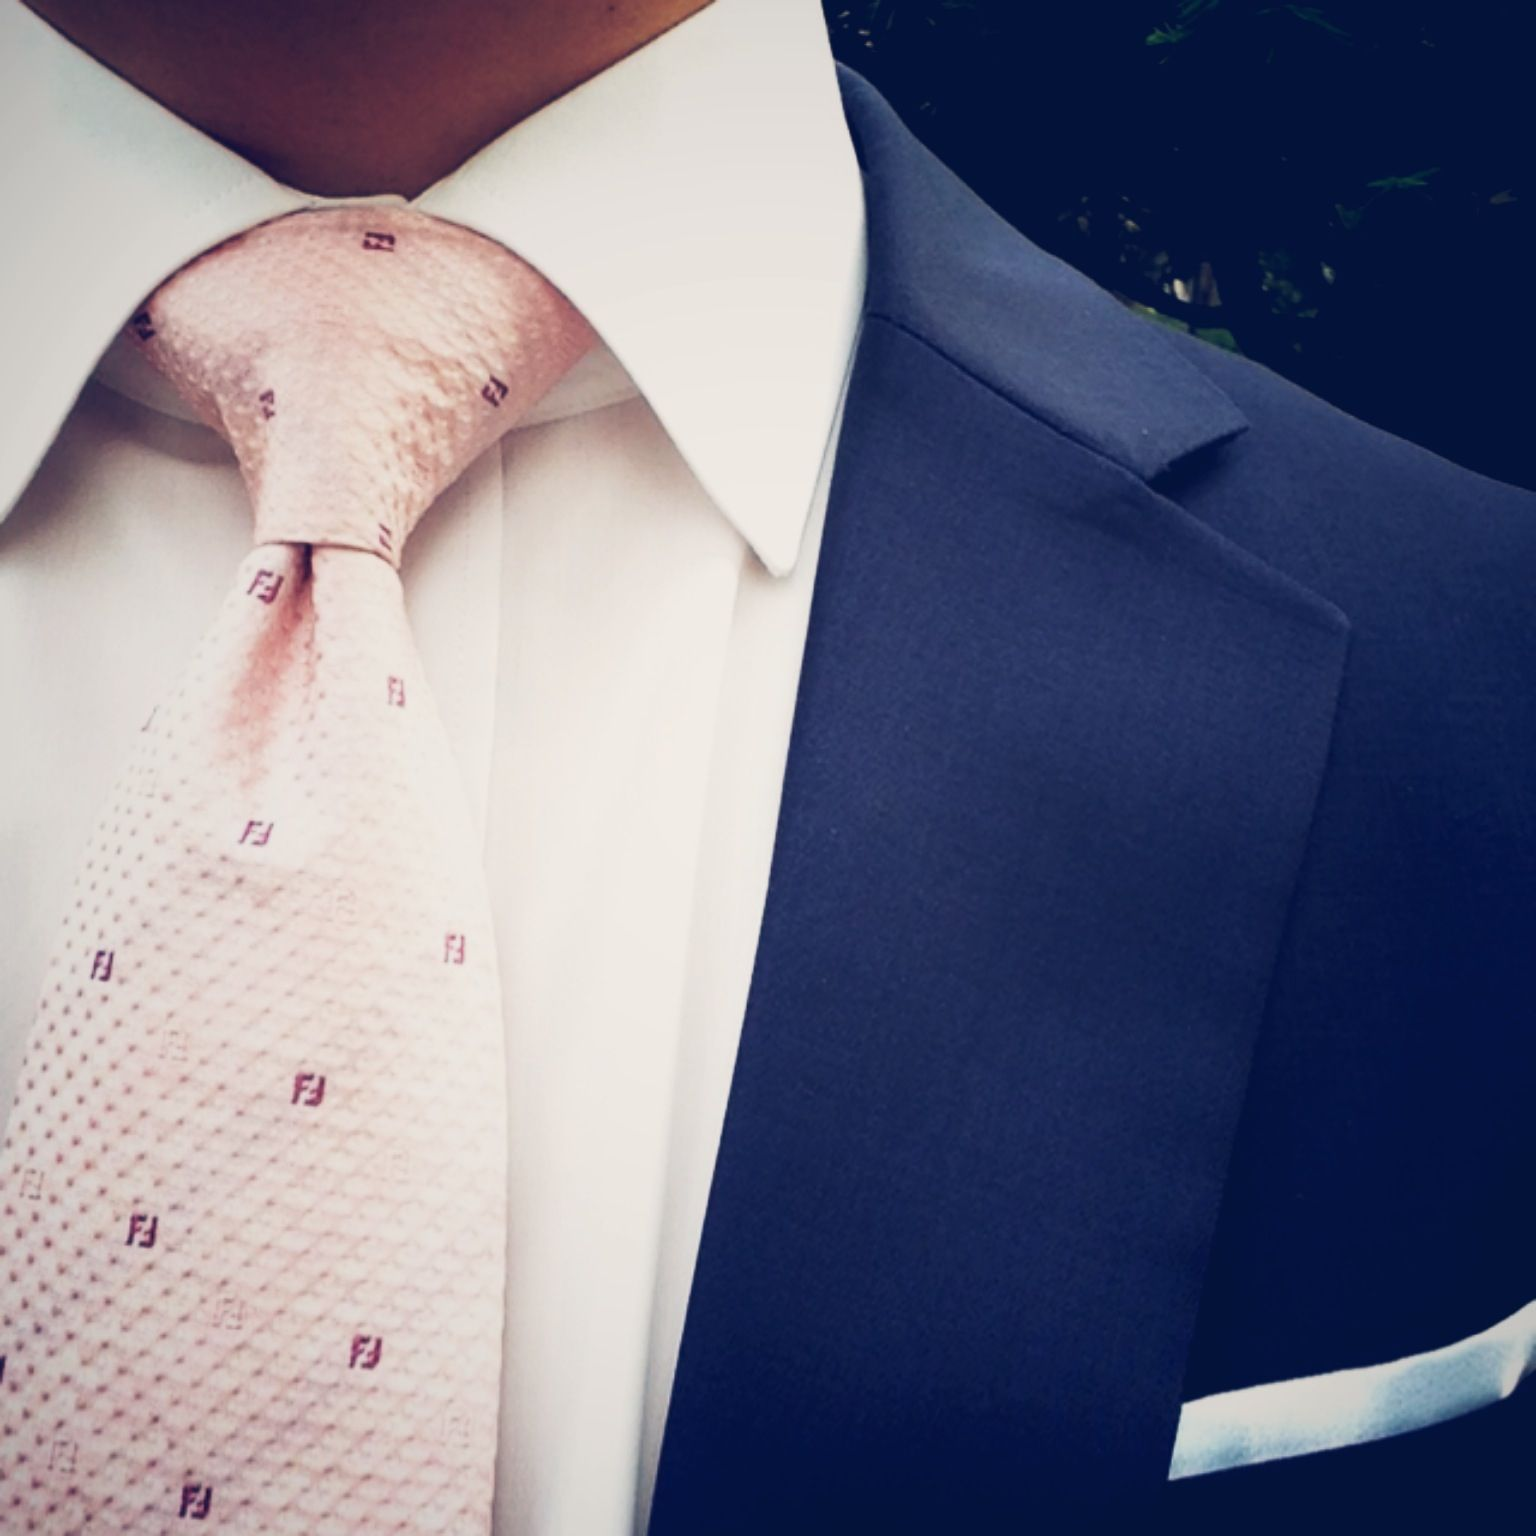 17671a6516fe Blush pink tie paired with dark blue suit and white pocket square. Always a  great look!